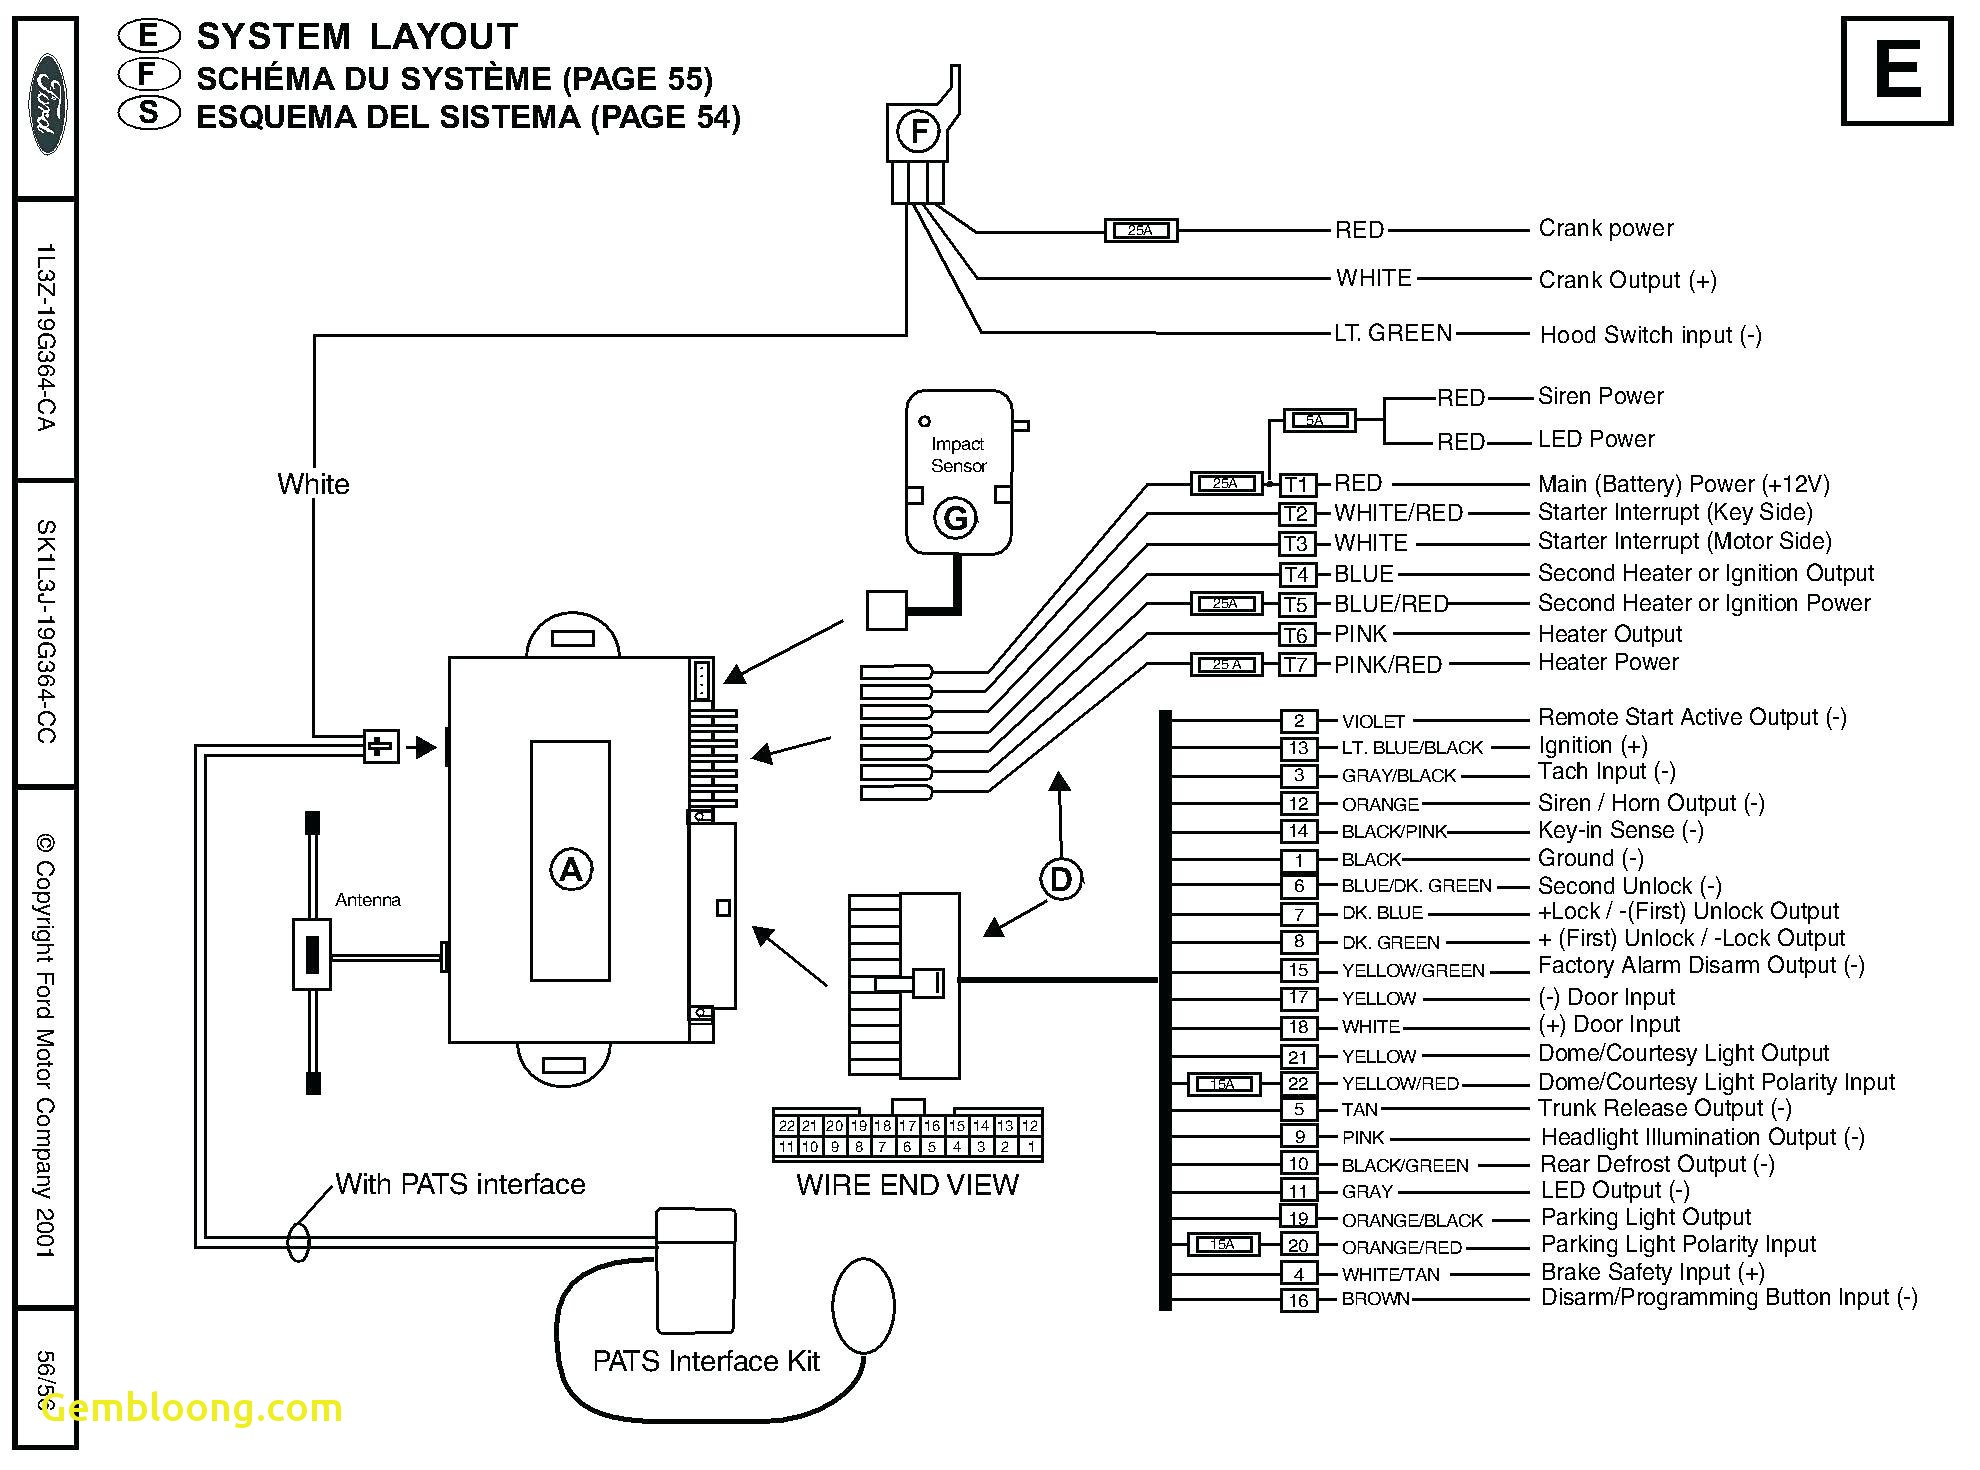 Ready Remote Wiring Diagram Expedition | Manual E-Books - Ready Remote Wiring Diagram